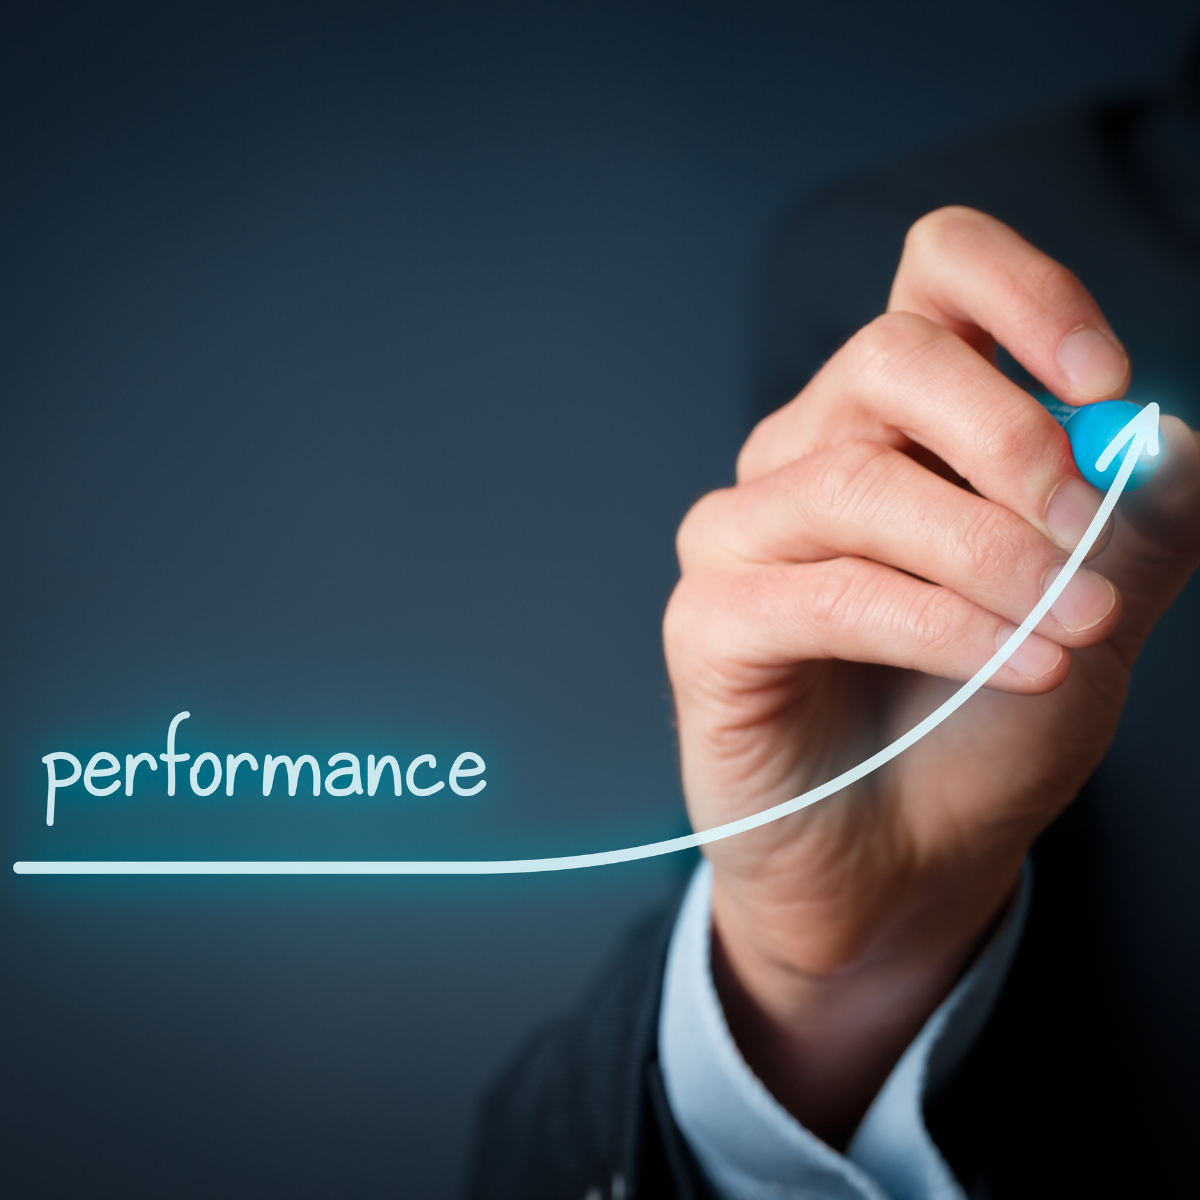 Performance management 101 and mentoring